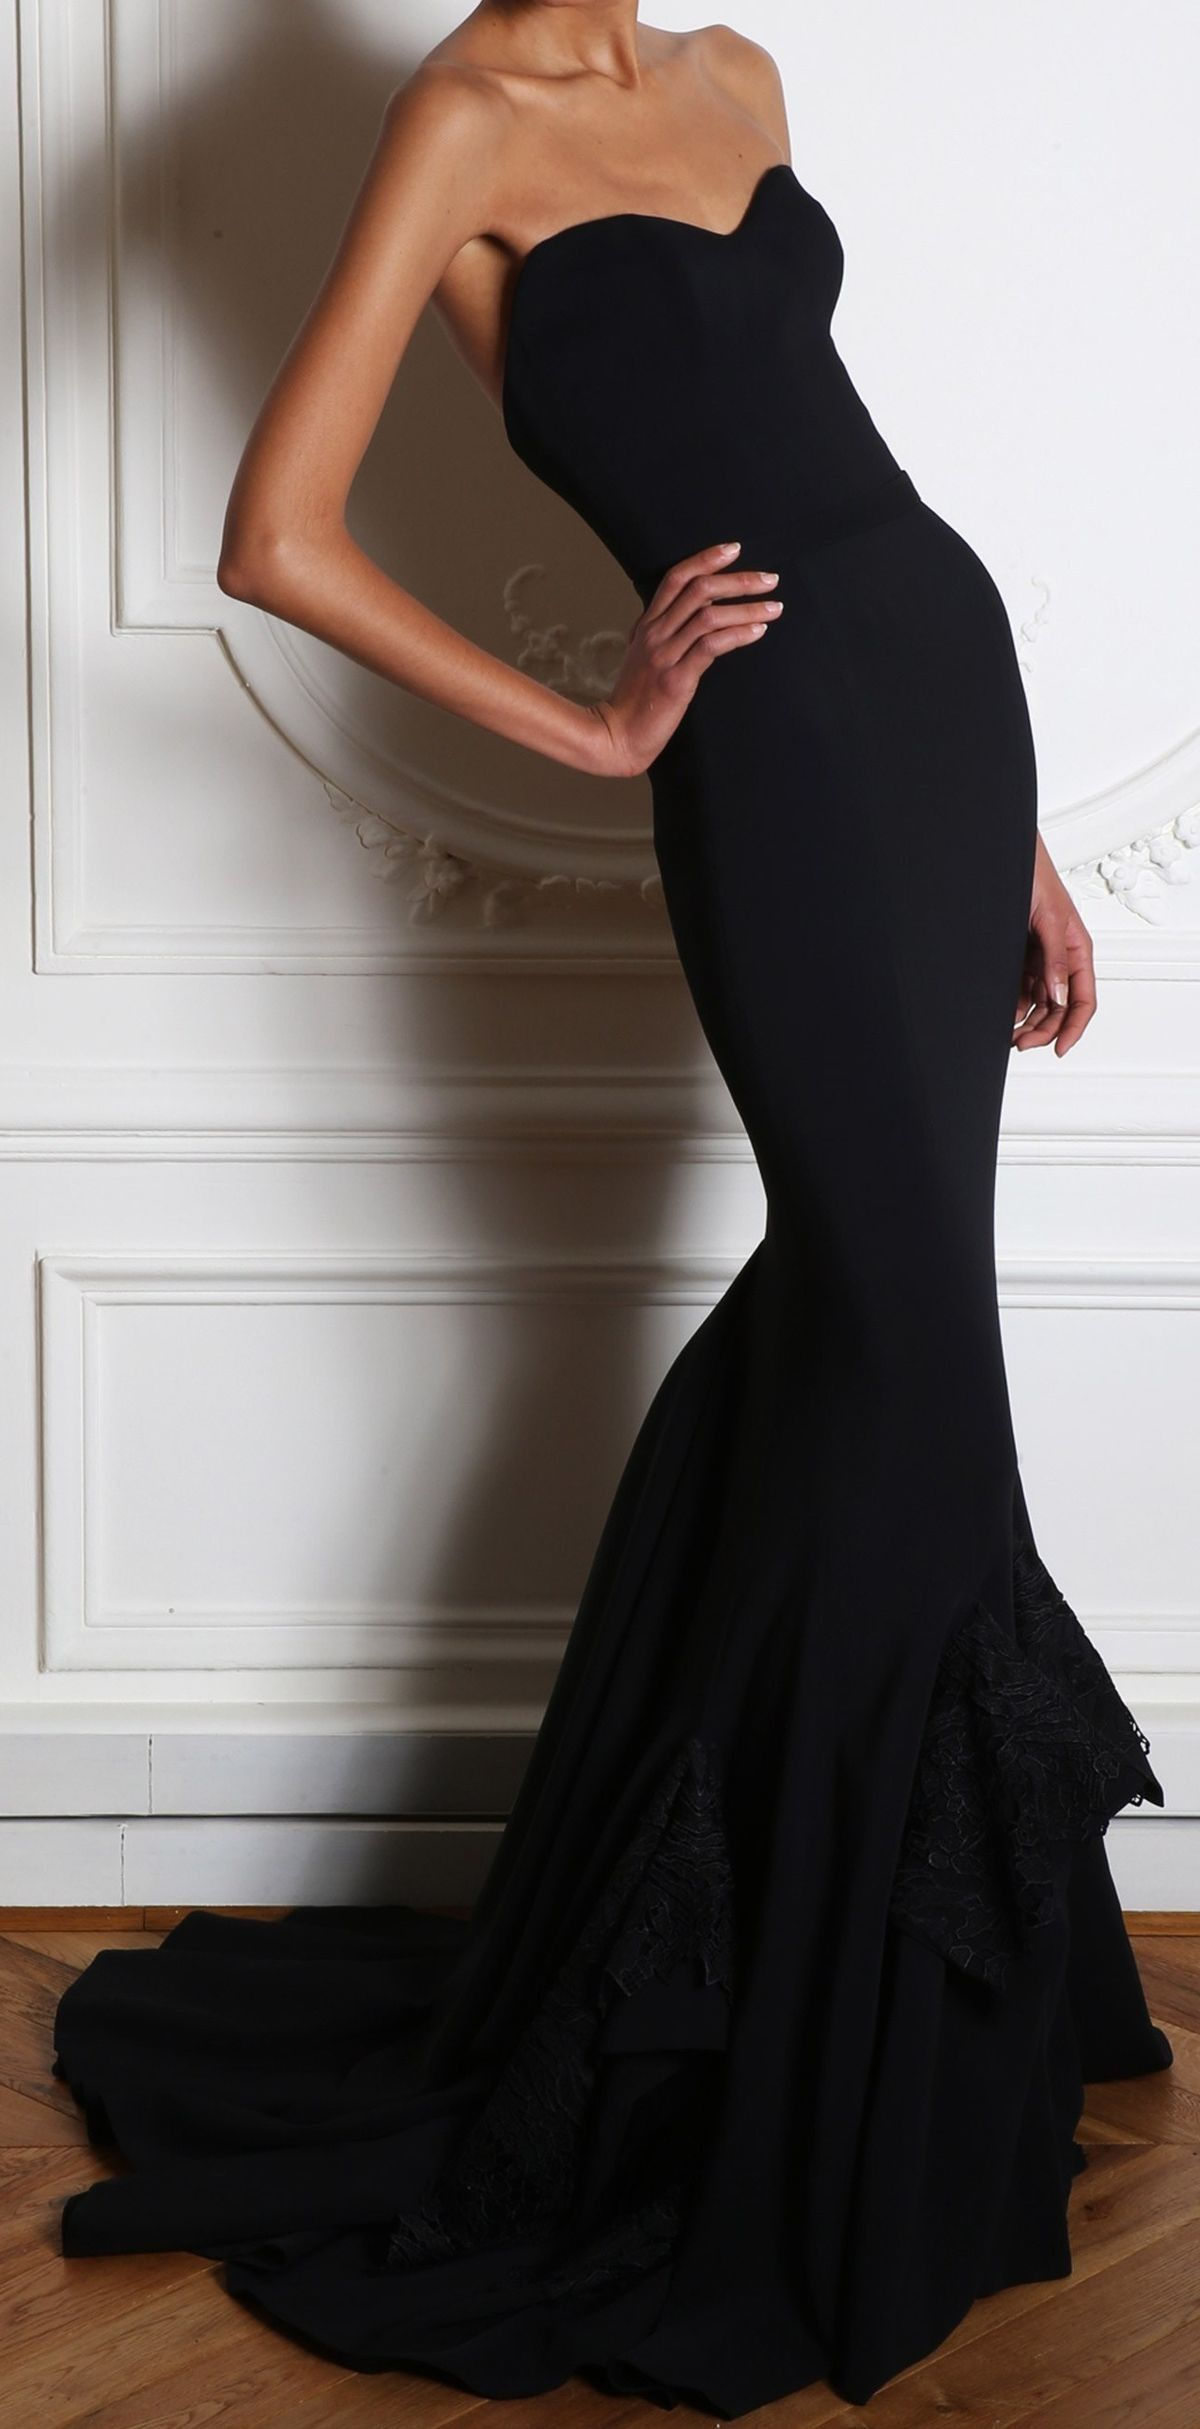 Oh so sharp and glamorous possible wedding dress silhouette